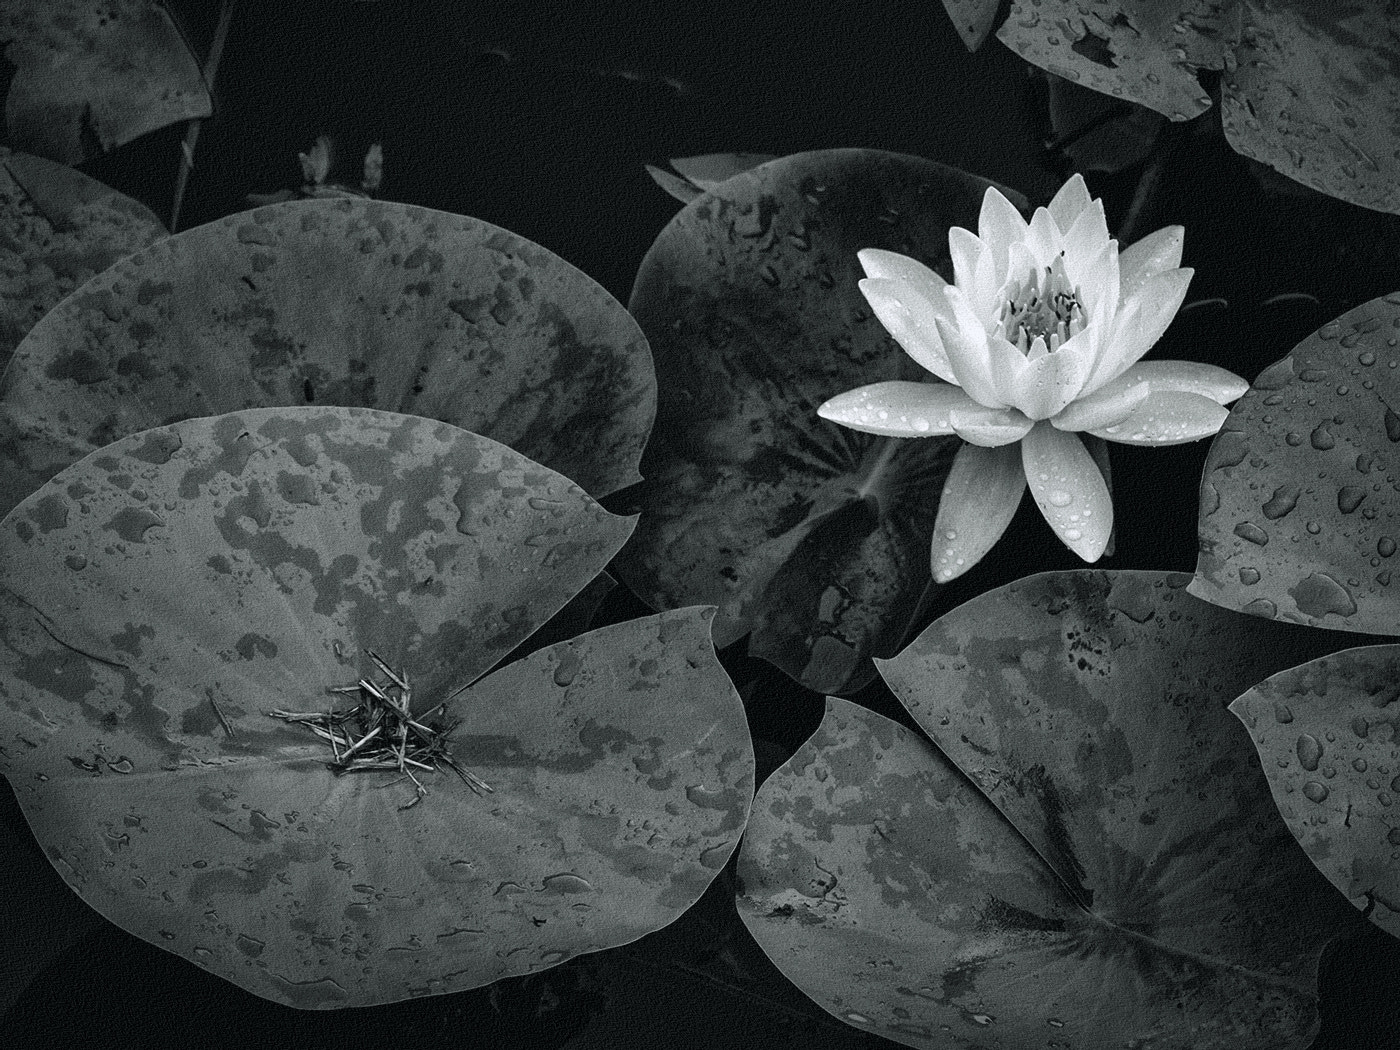 Photograph Lily in Pond by Alan Borror on 500px